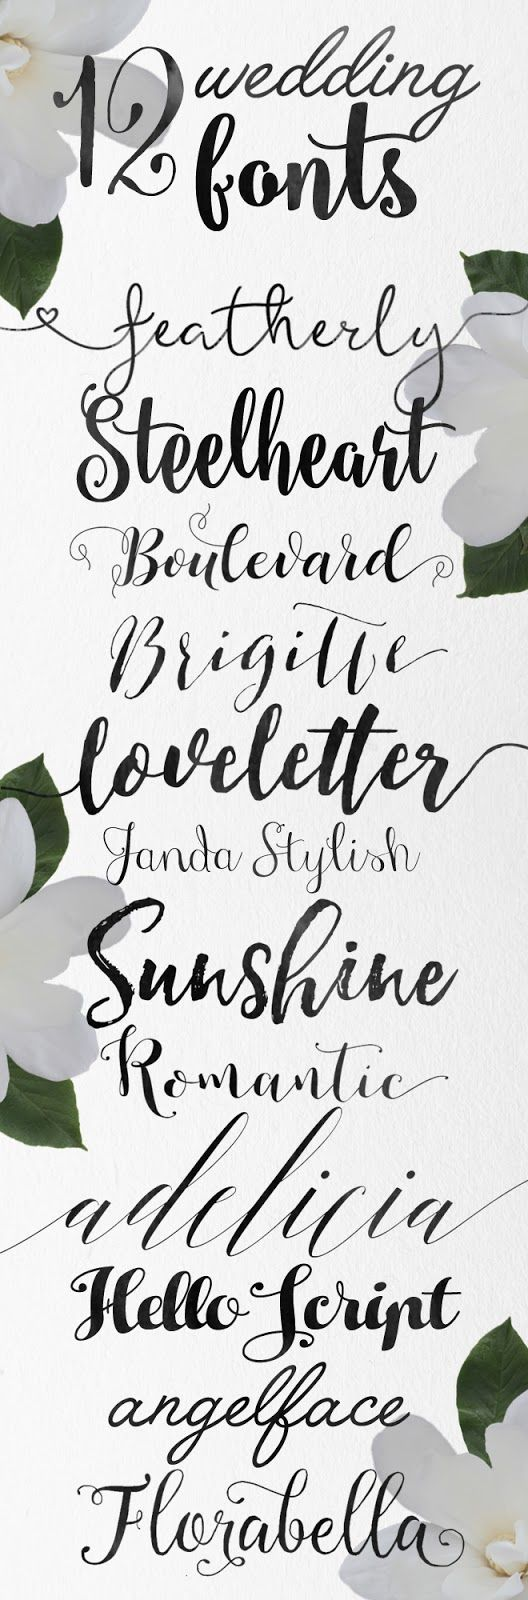 Wedding fonts and calligraphy on pinterest